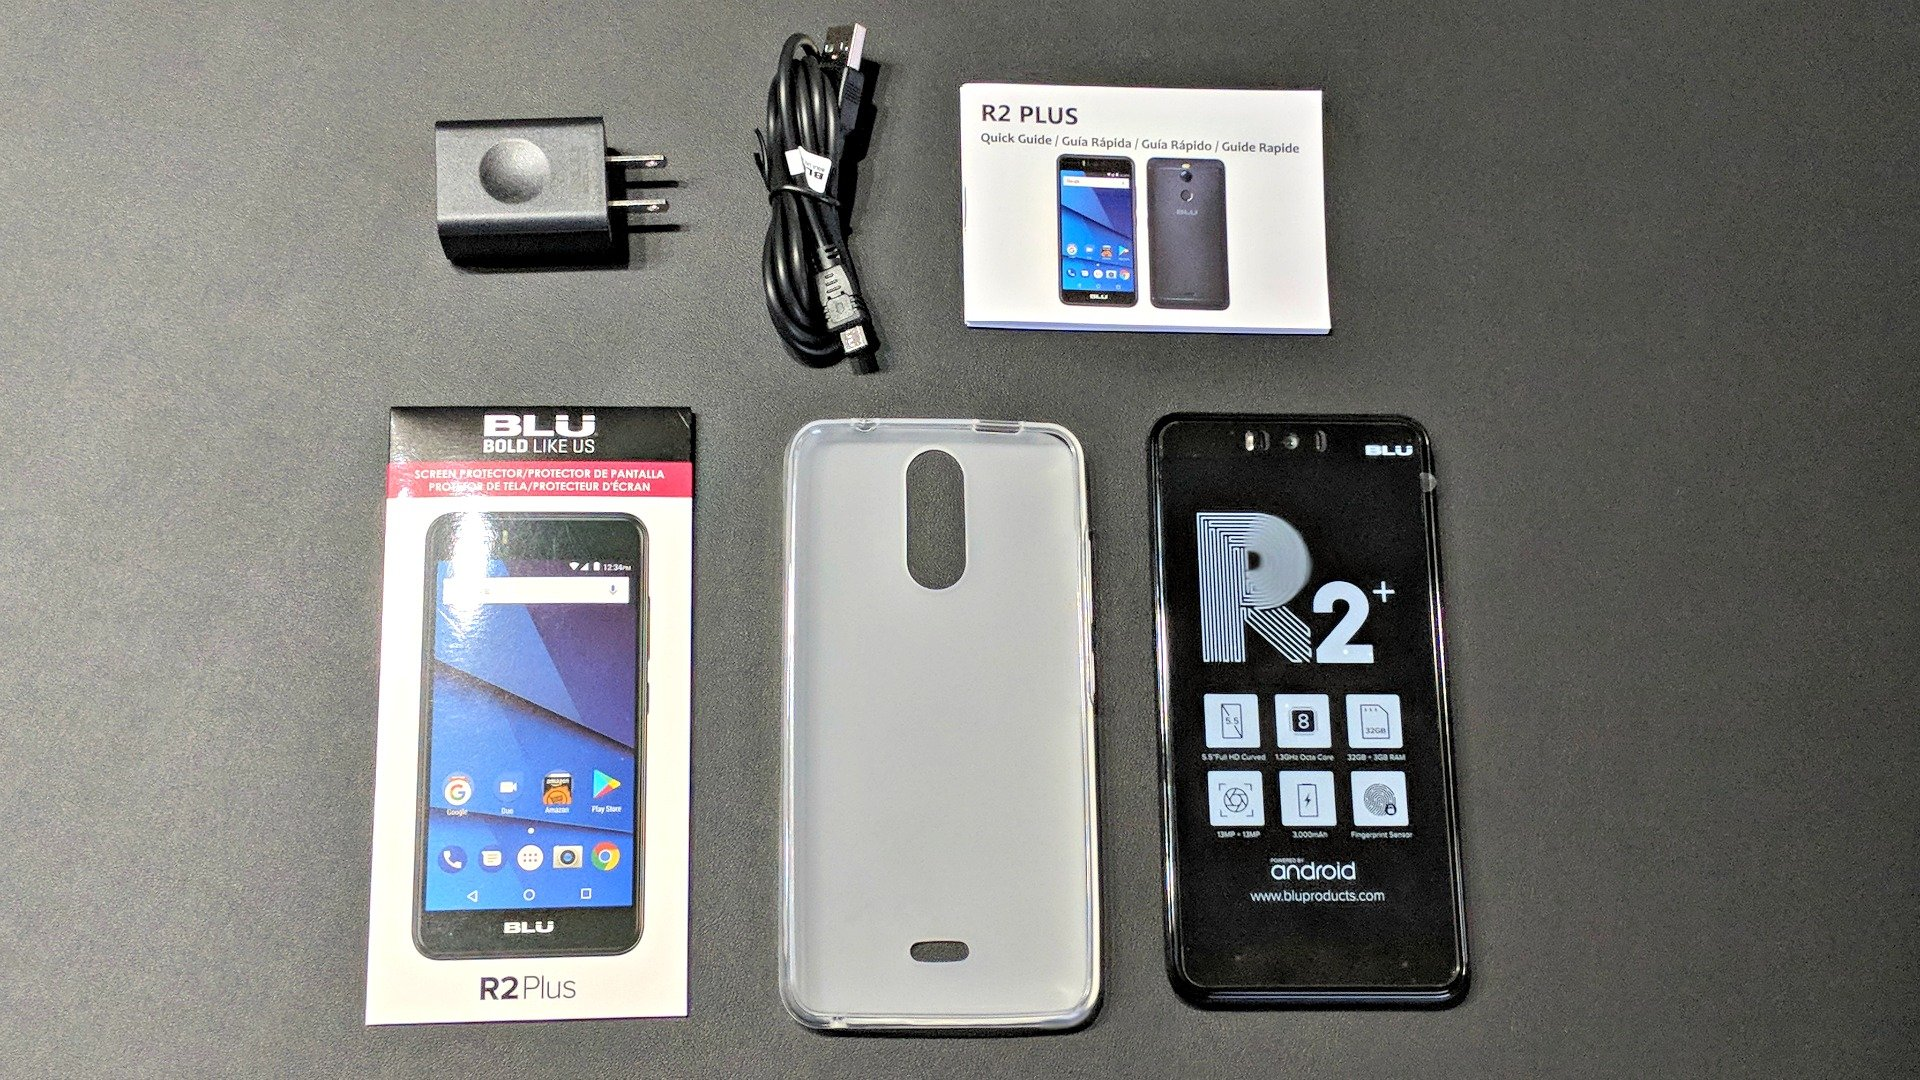 best service cb2cc a024f Blu R2 Plus review: The budget line gets a timely and worthwhile refresh